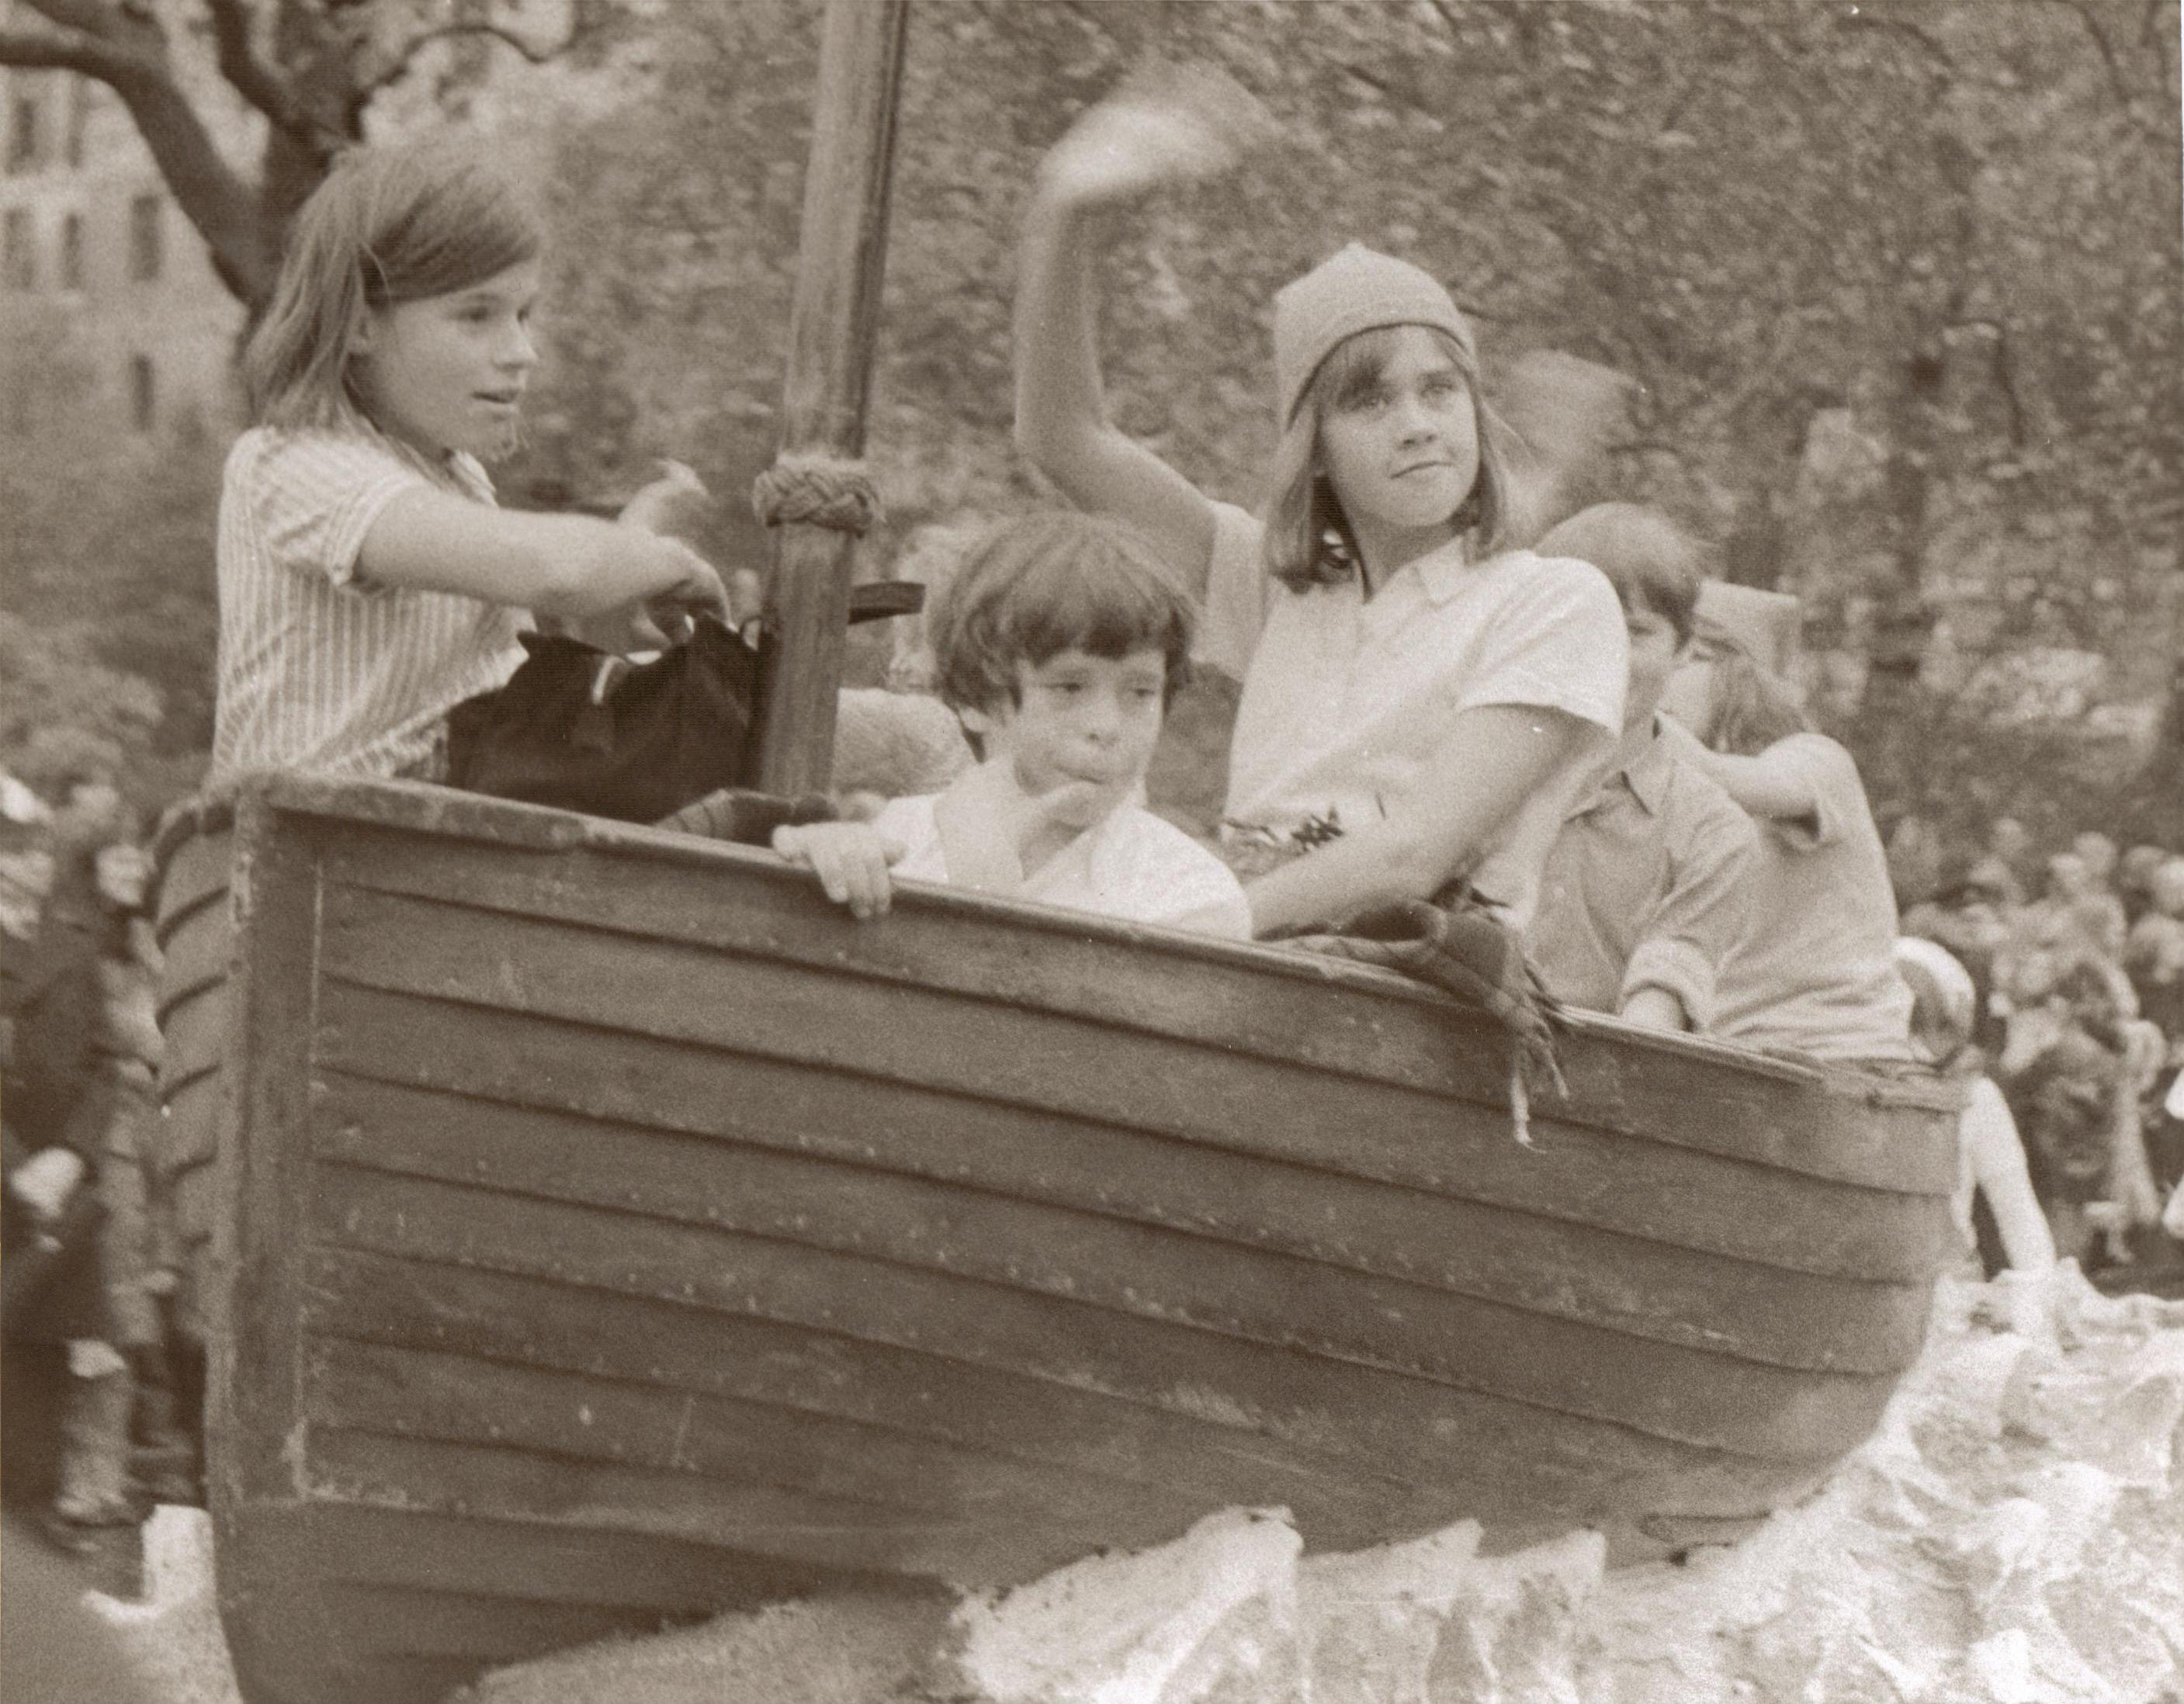 Suzanna Hamilton, Stephen Grendon, Leslie Bennett, Simon West and Kit Seymour sailing the streets of London in 'Swallow'